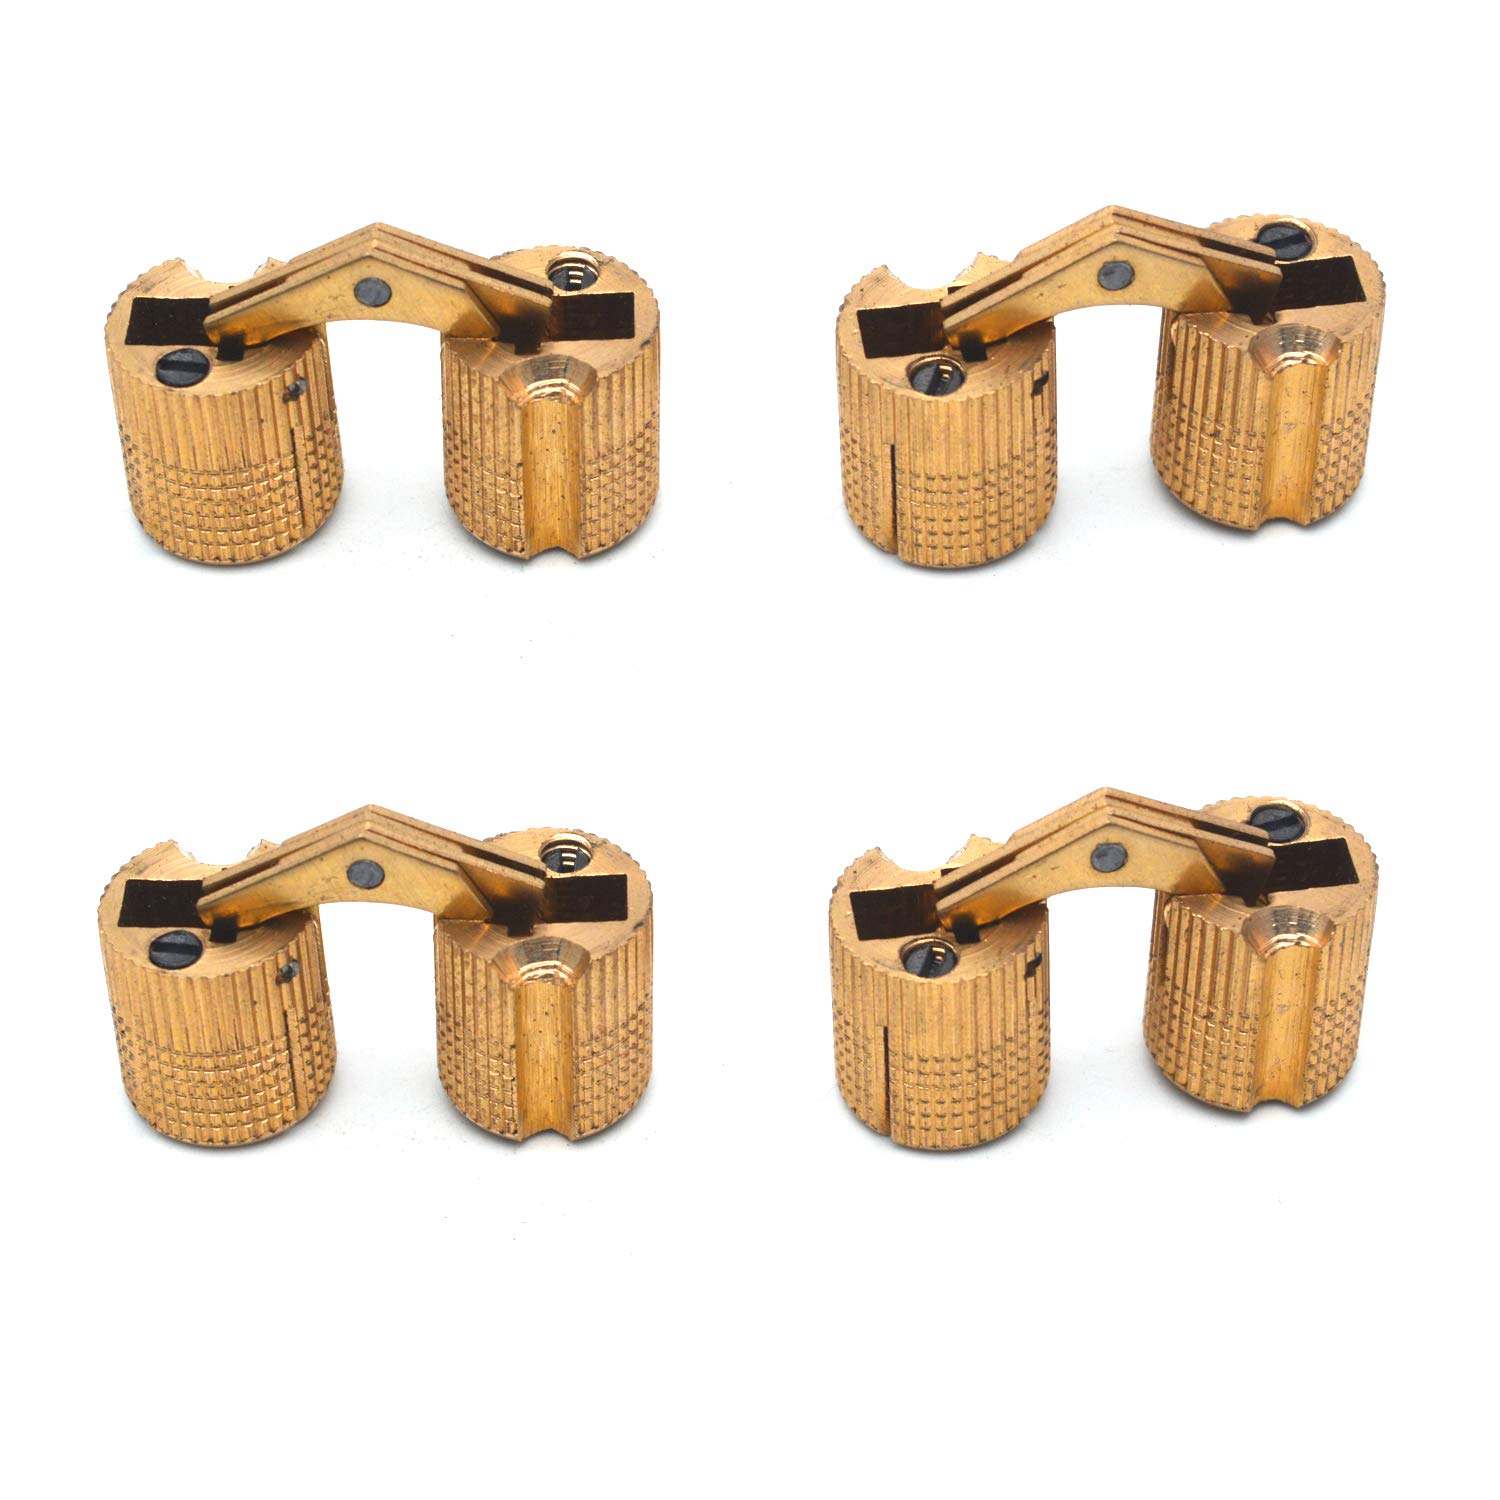 Antrader 4-Pack 14mm Hidden Brass Barrel Hinges Cylindrical Invisible Concealed Furniture Hinges 180 Degree Opening Angle Guangzhou Openfind Electronic Commerce CO. LTD